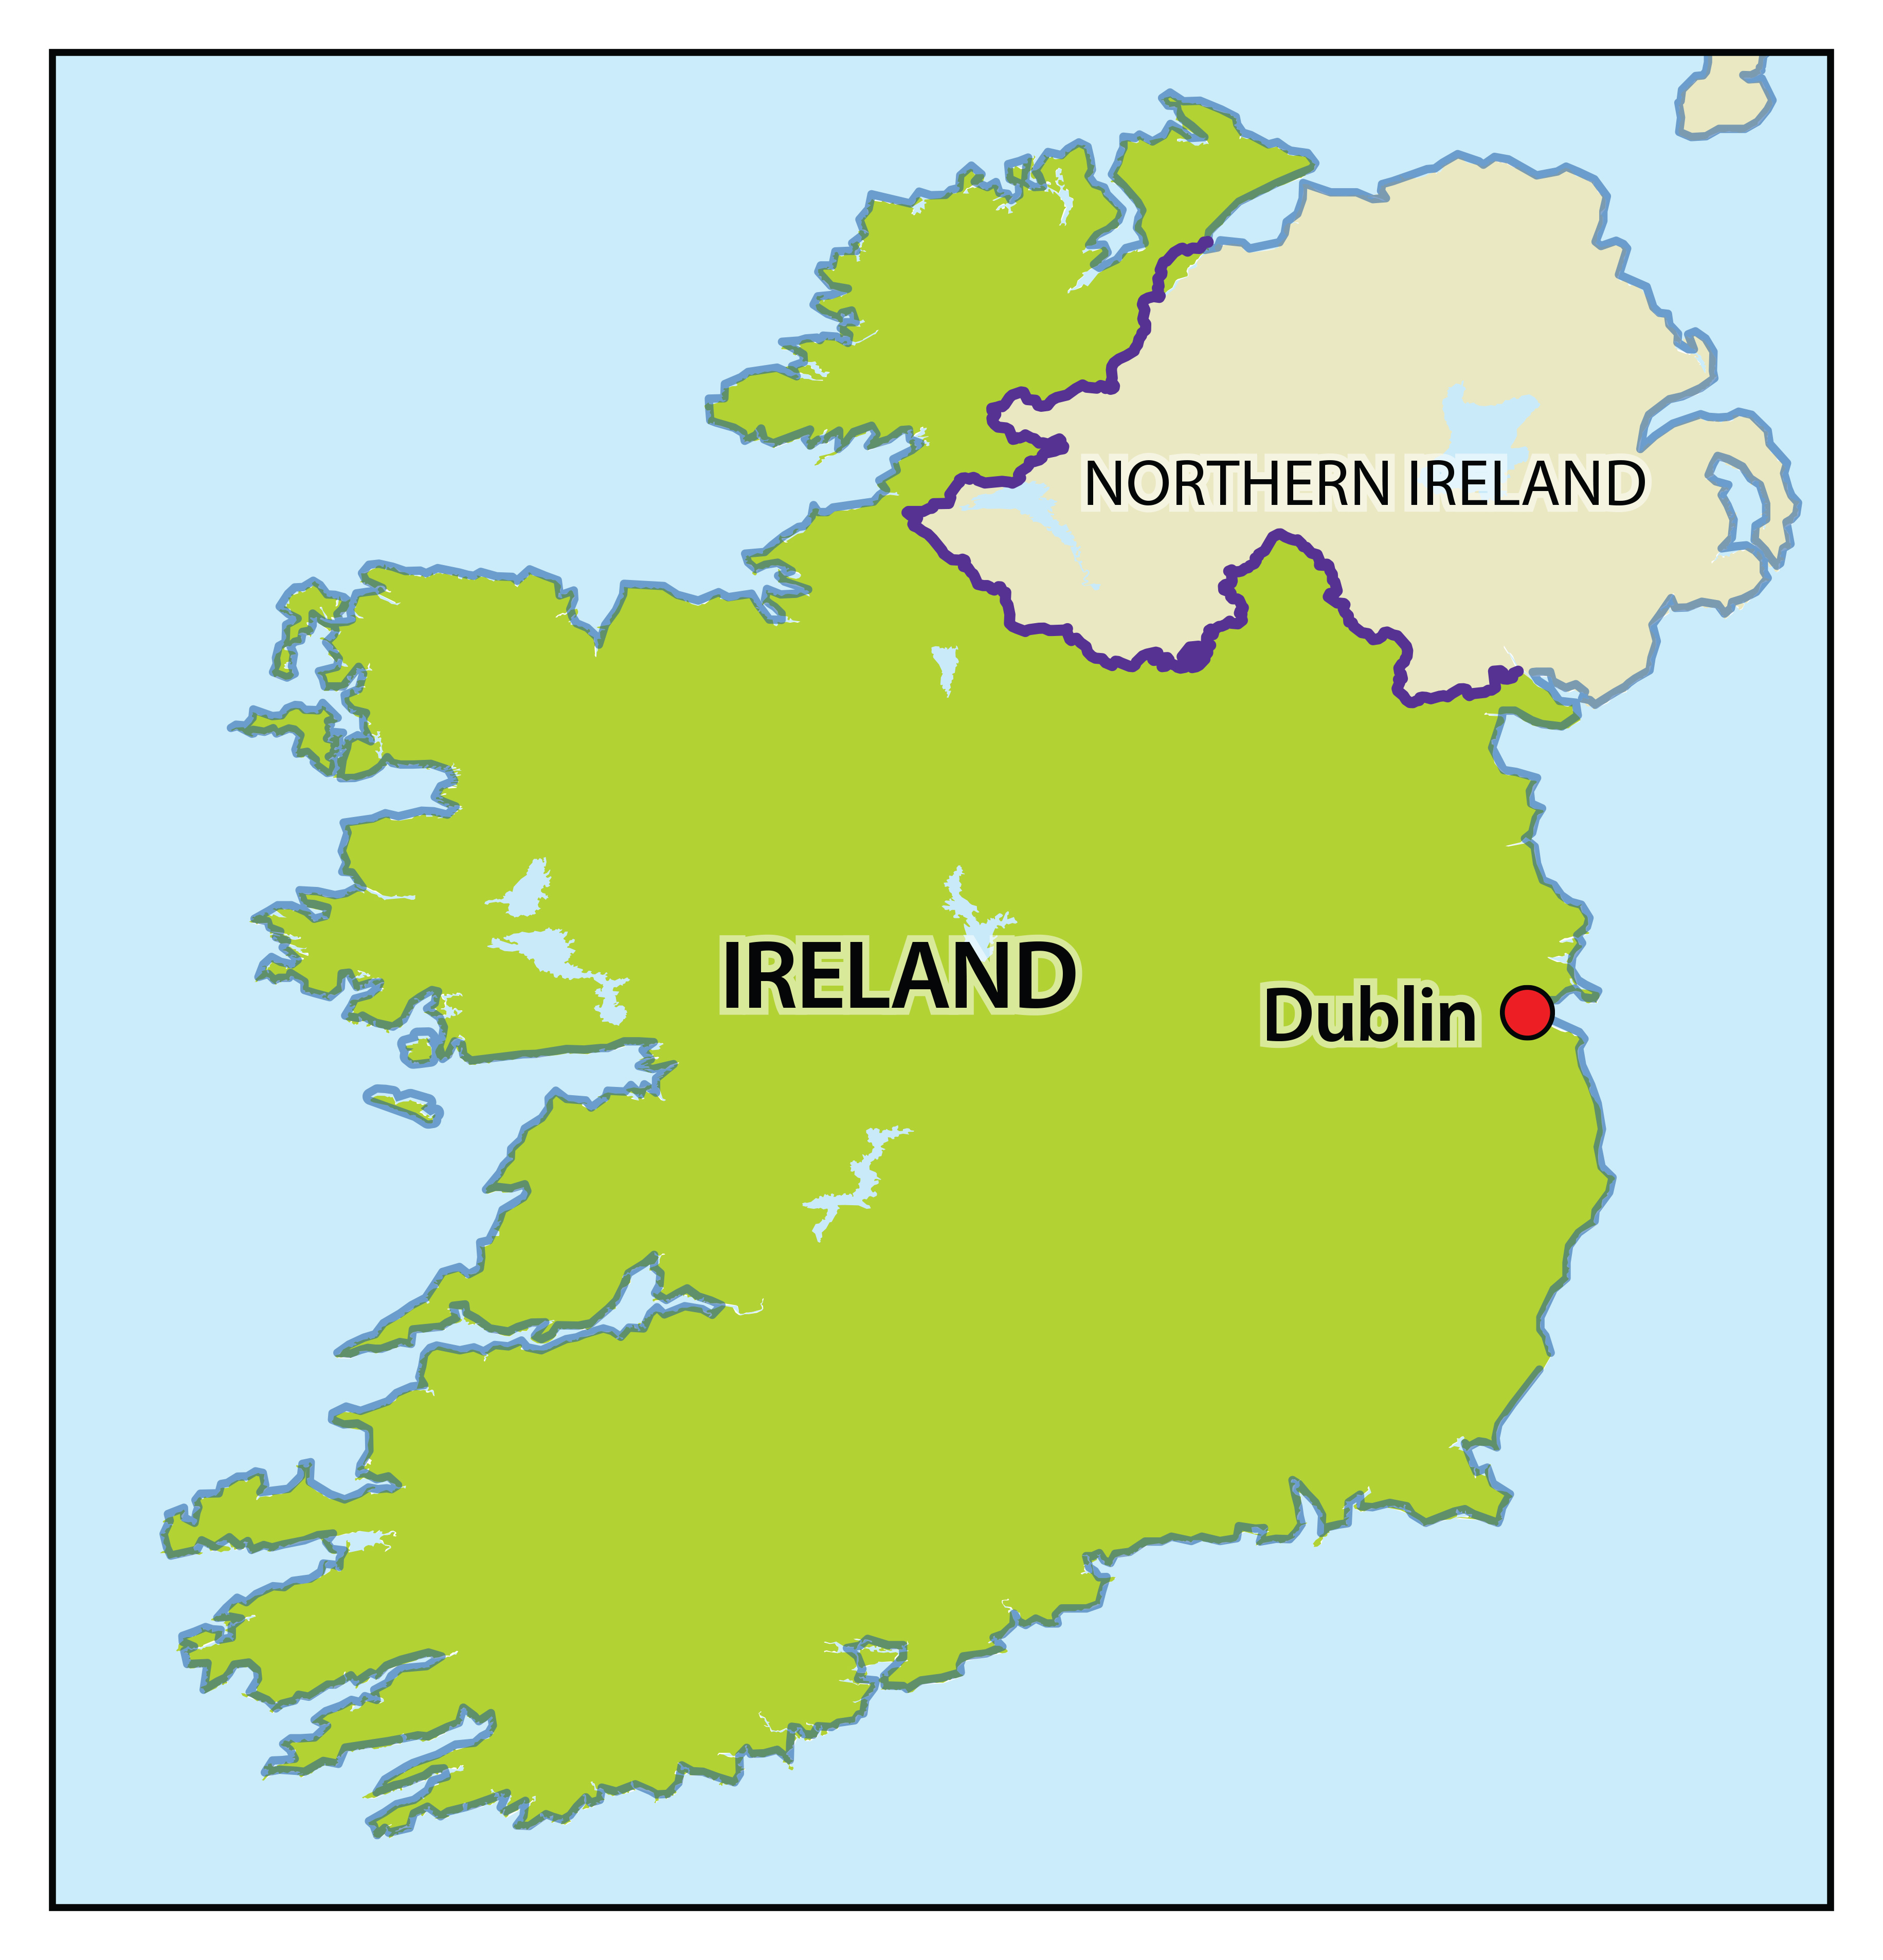 natural resources found in ireland, france map great britain ireland, map s and n ireland, tourism ireland, on industrial map of ireland